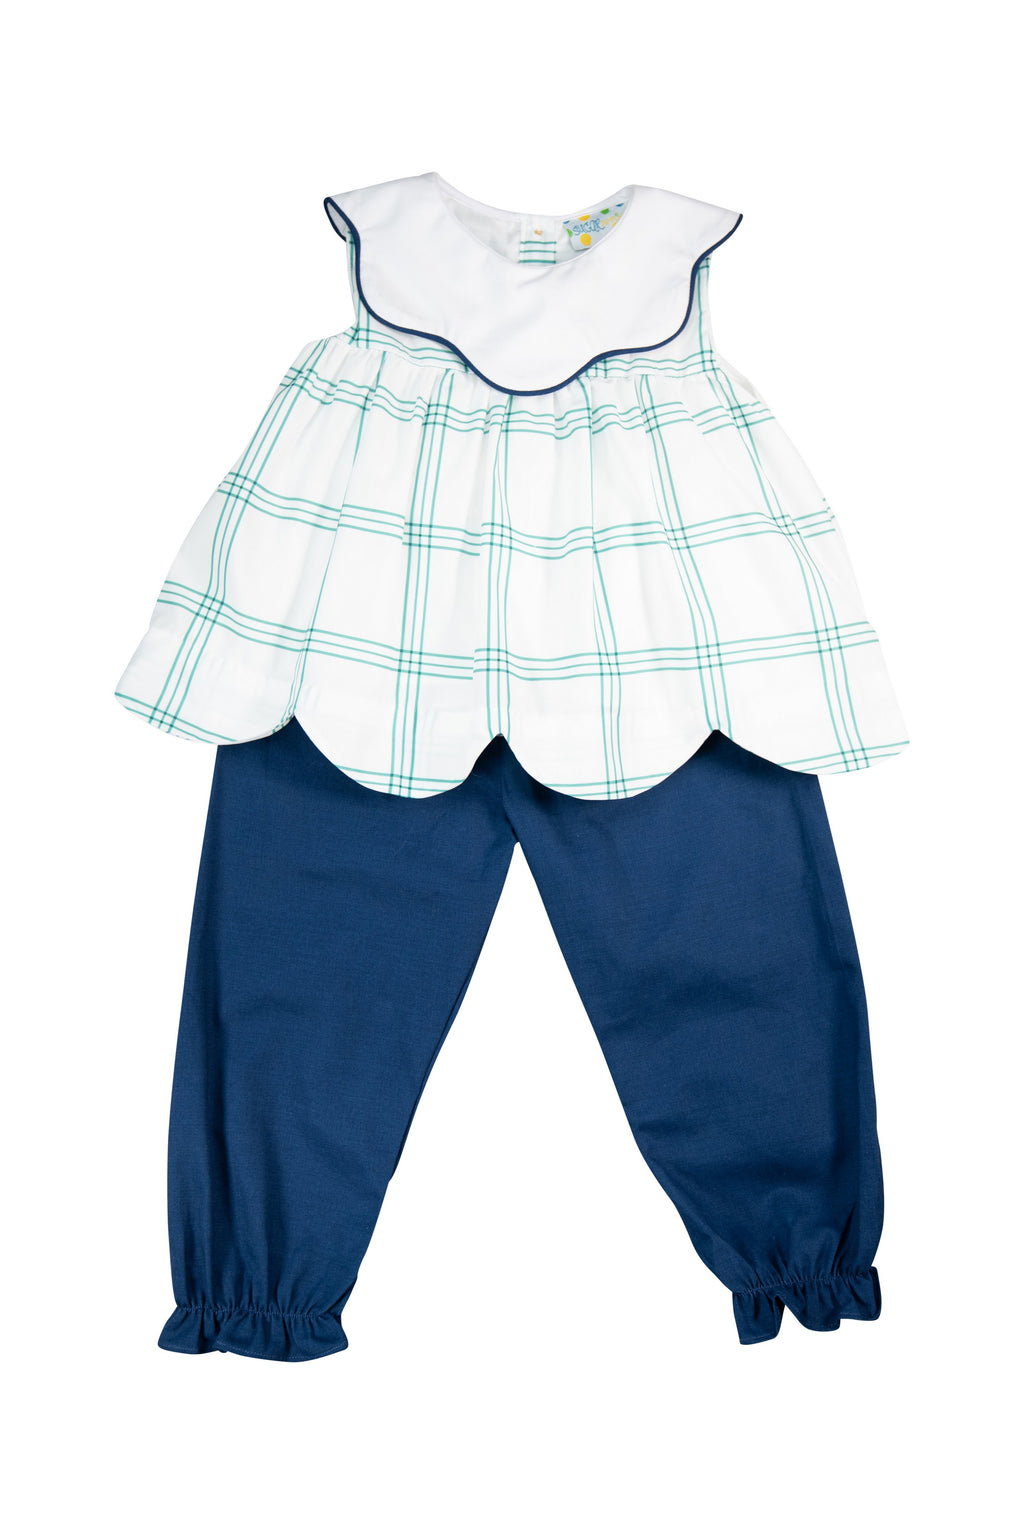 Girls Green and Navy Plaid Pant Set